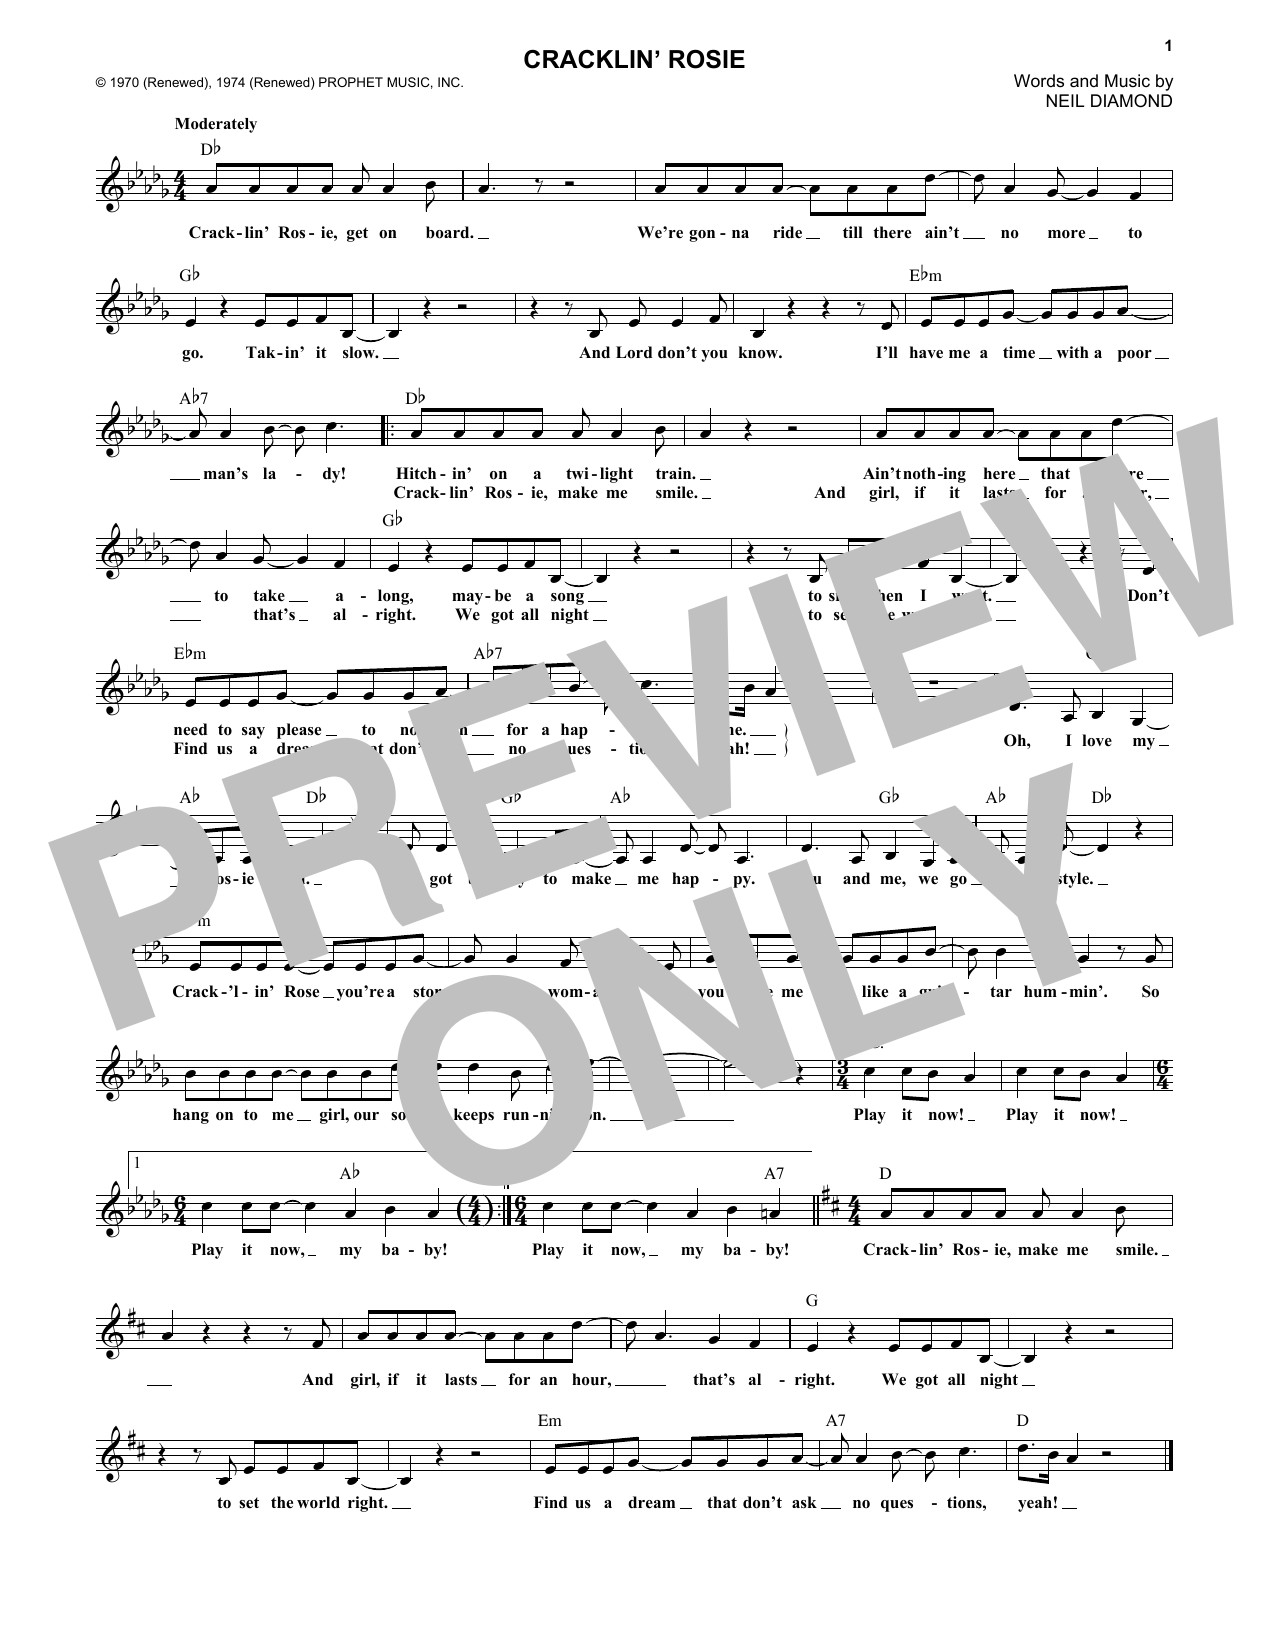 Cracklin' Rosie Sheet Music